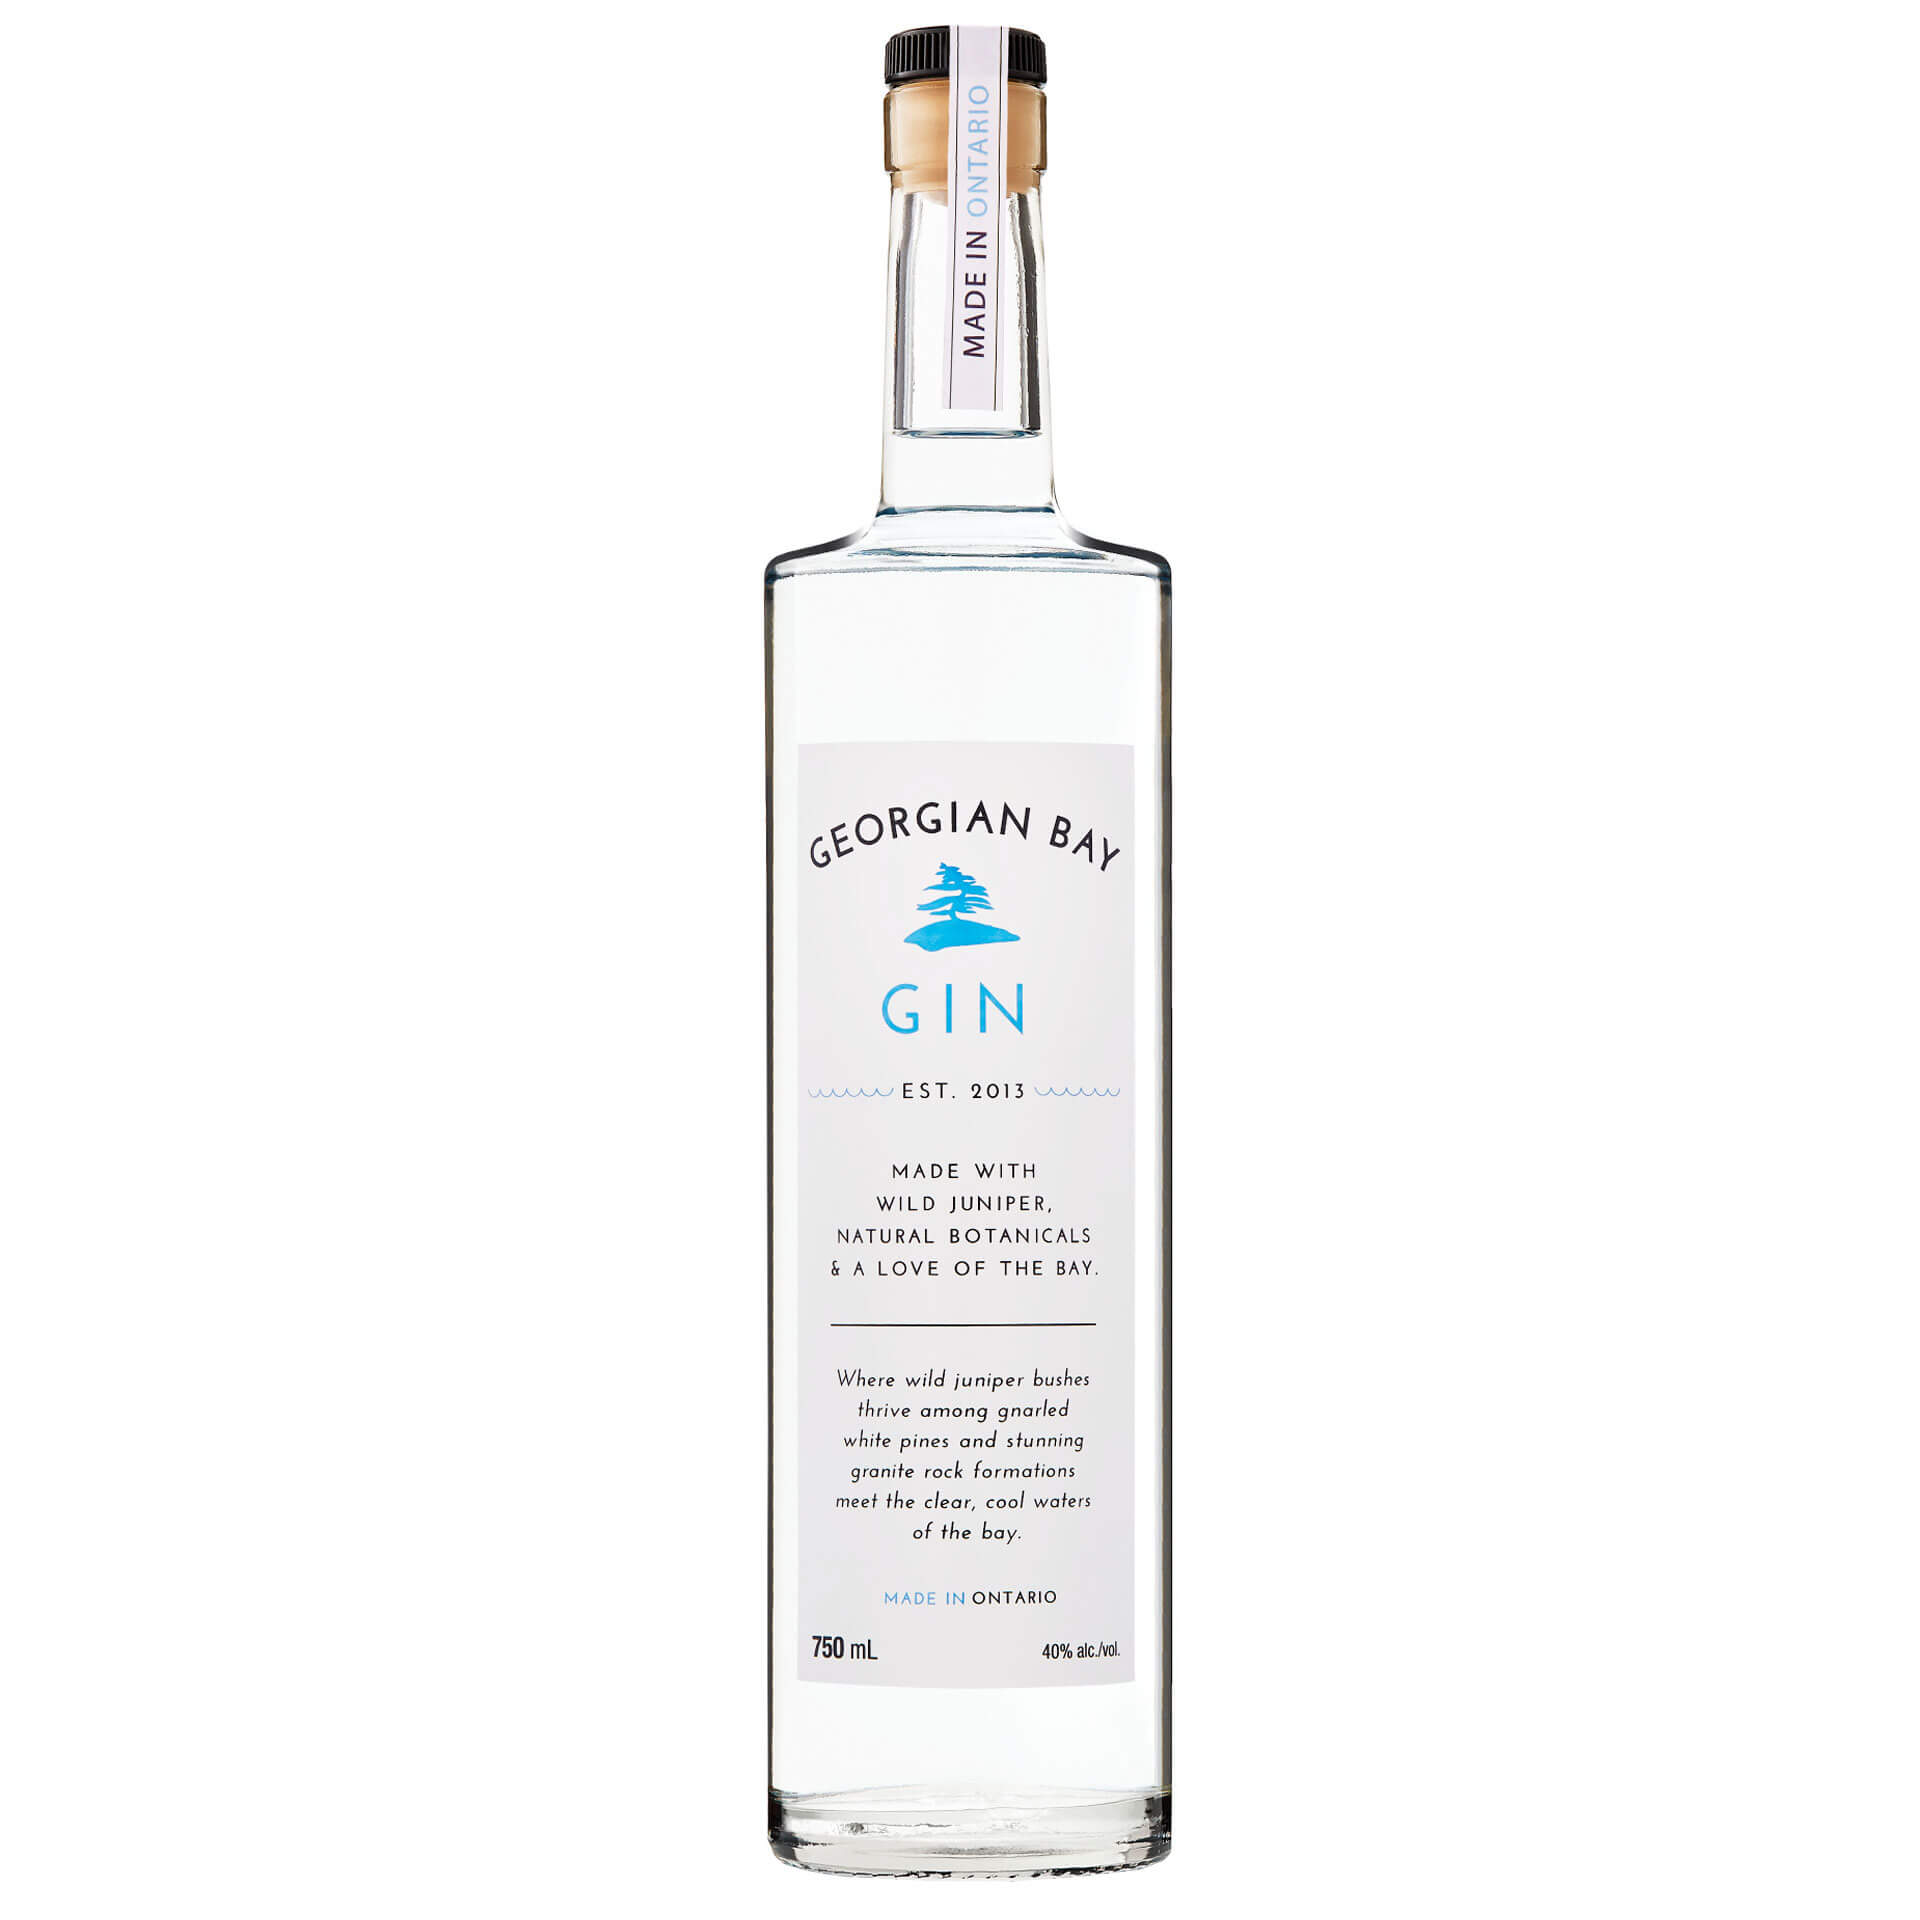 Georgian Bay Spirit Co. - Georgian Bay Award Winning Gin